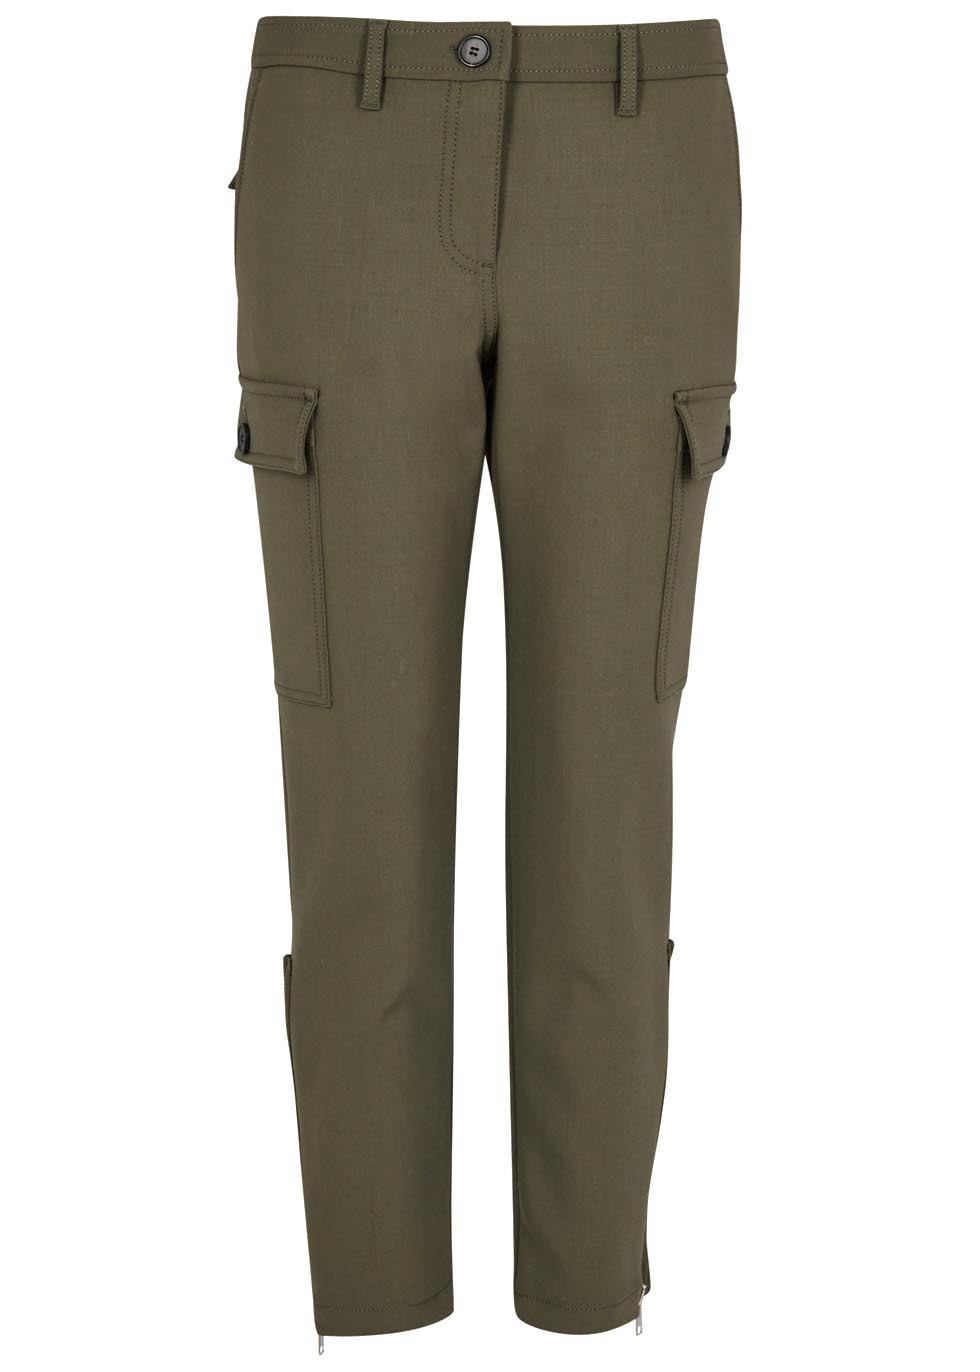 Olive Cropped Stretch Wool Trousers - pattern: plain; waist: mid/regular rise; style: cargo; predominant colour: khaki; occasions: casual, creative work; length: ankle length; fibres: wool - mix; waist detail: feature waist detail; fit: slim leg; pattern type: fabric; texture group: woven light midweight; wardrobe: basic; season: a/w 2016; trends: military